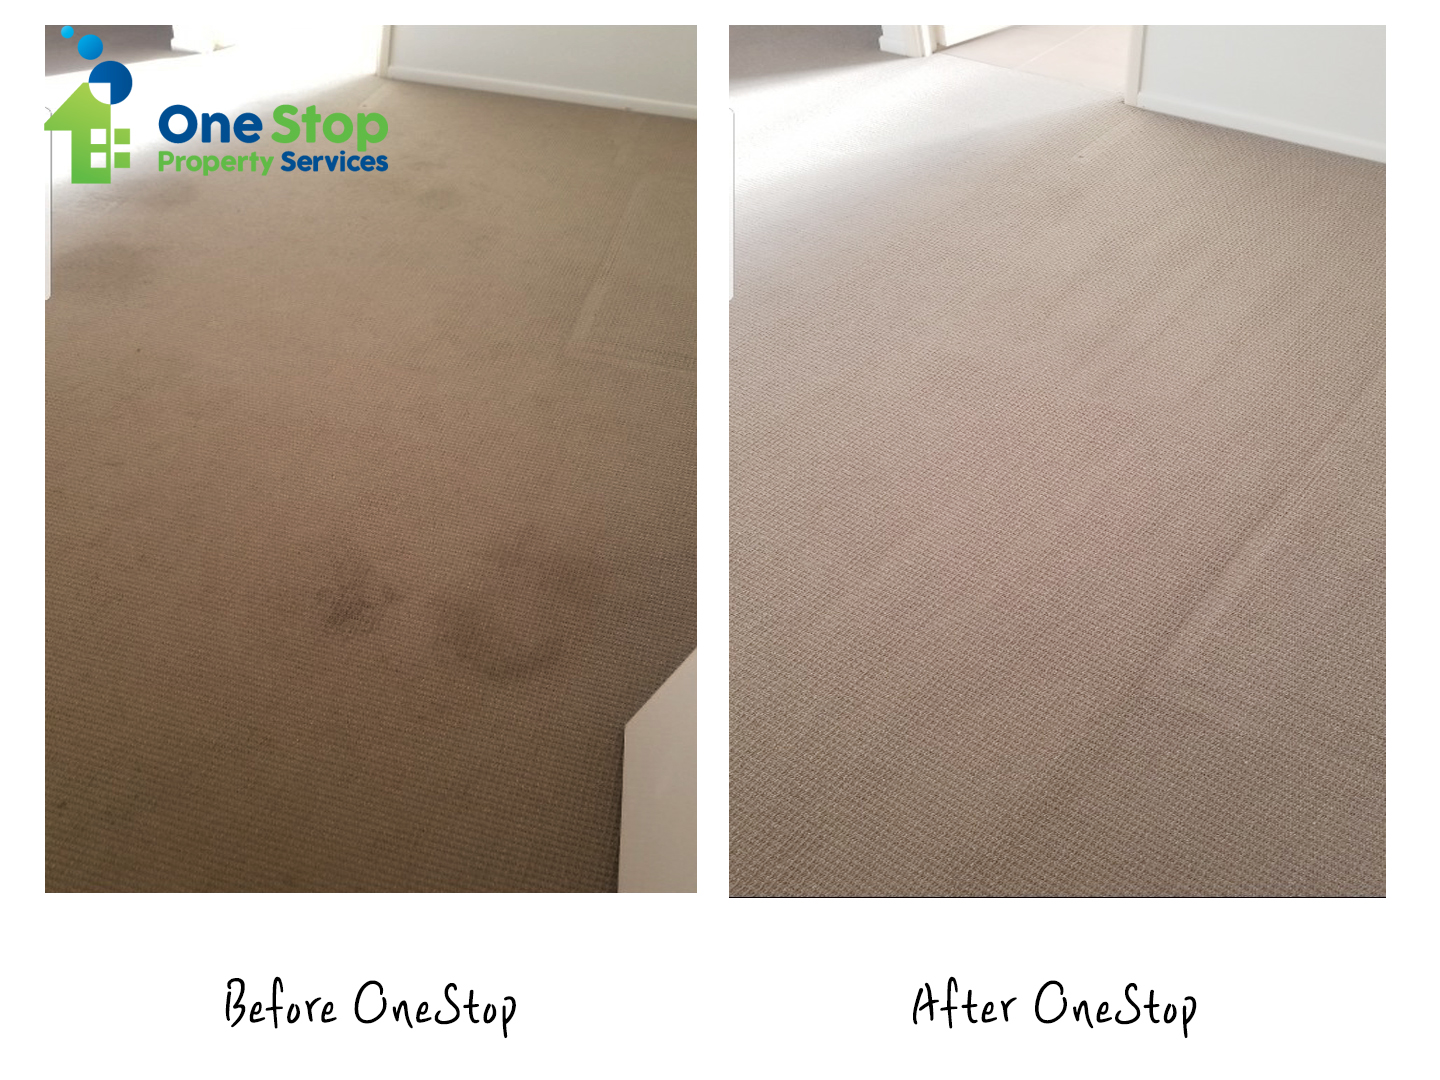 Before and after cleaning the light brown coloured carpet